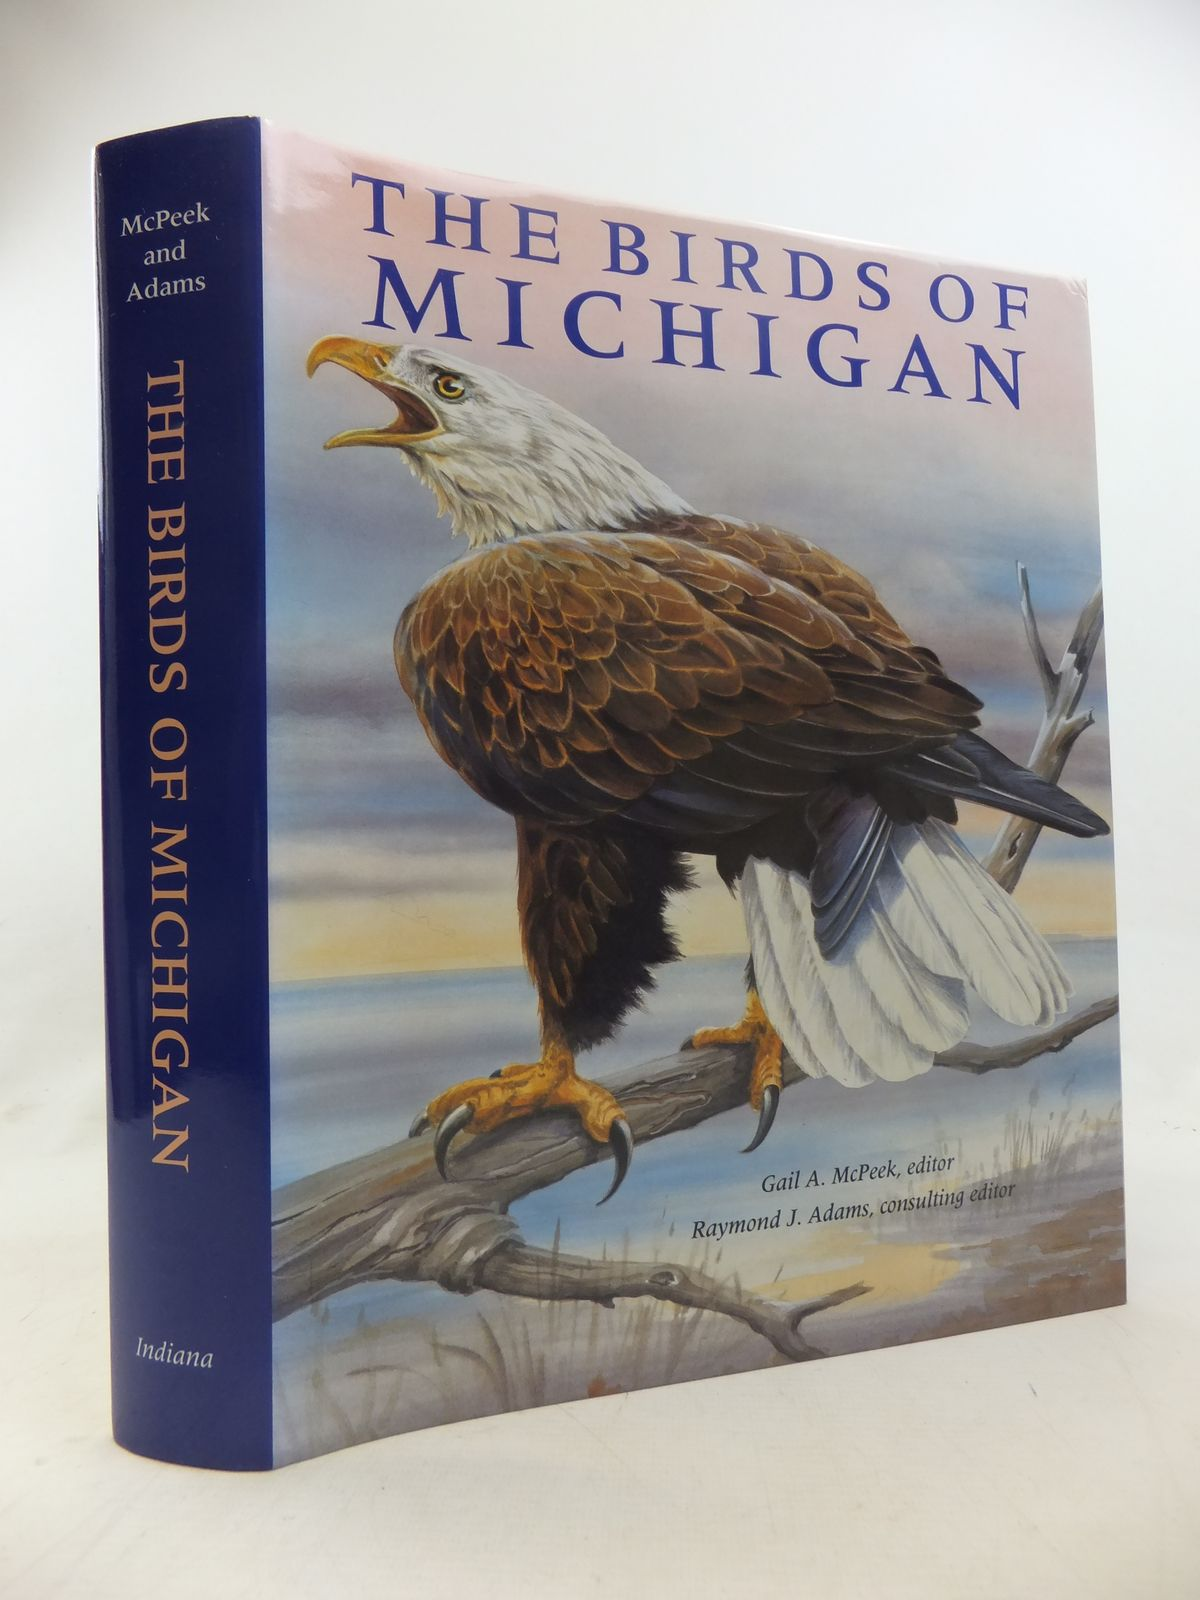 Photo of THE BIRDS OF MICHIGAN written by Granlund, James McPeek, Gail A. Adams, Raymond J. et al, illustrated by Callog, Cyndy Felsing, John Hertling, Heiner et al., published by Indiana University Press (STOCK CODE: 1811193)  for sale by Stella & Rose's Books